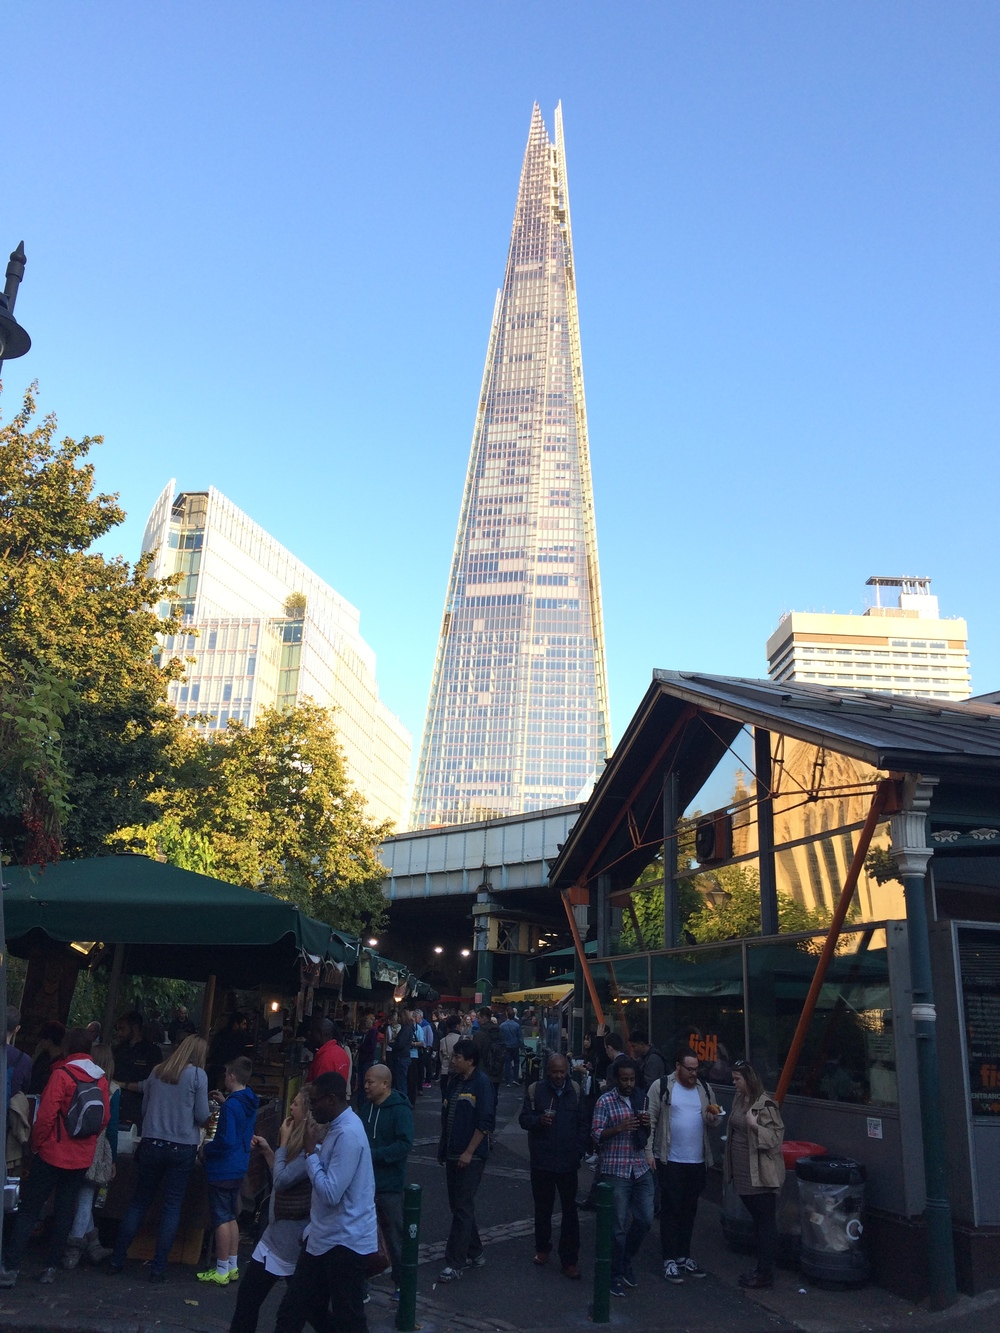 The towering Shard as seen from Borough Market on a sunny London day.